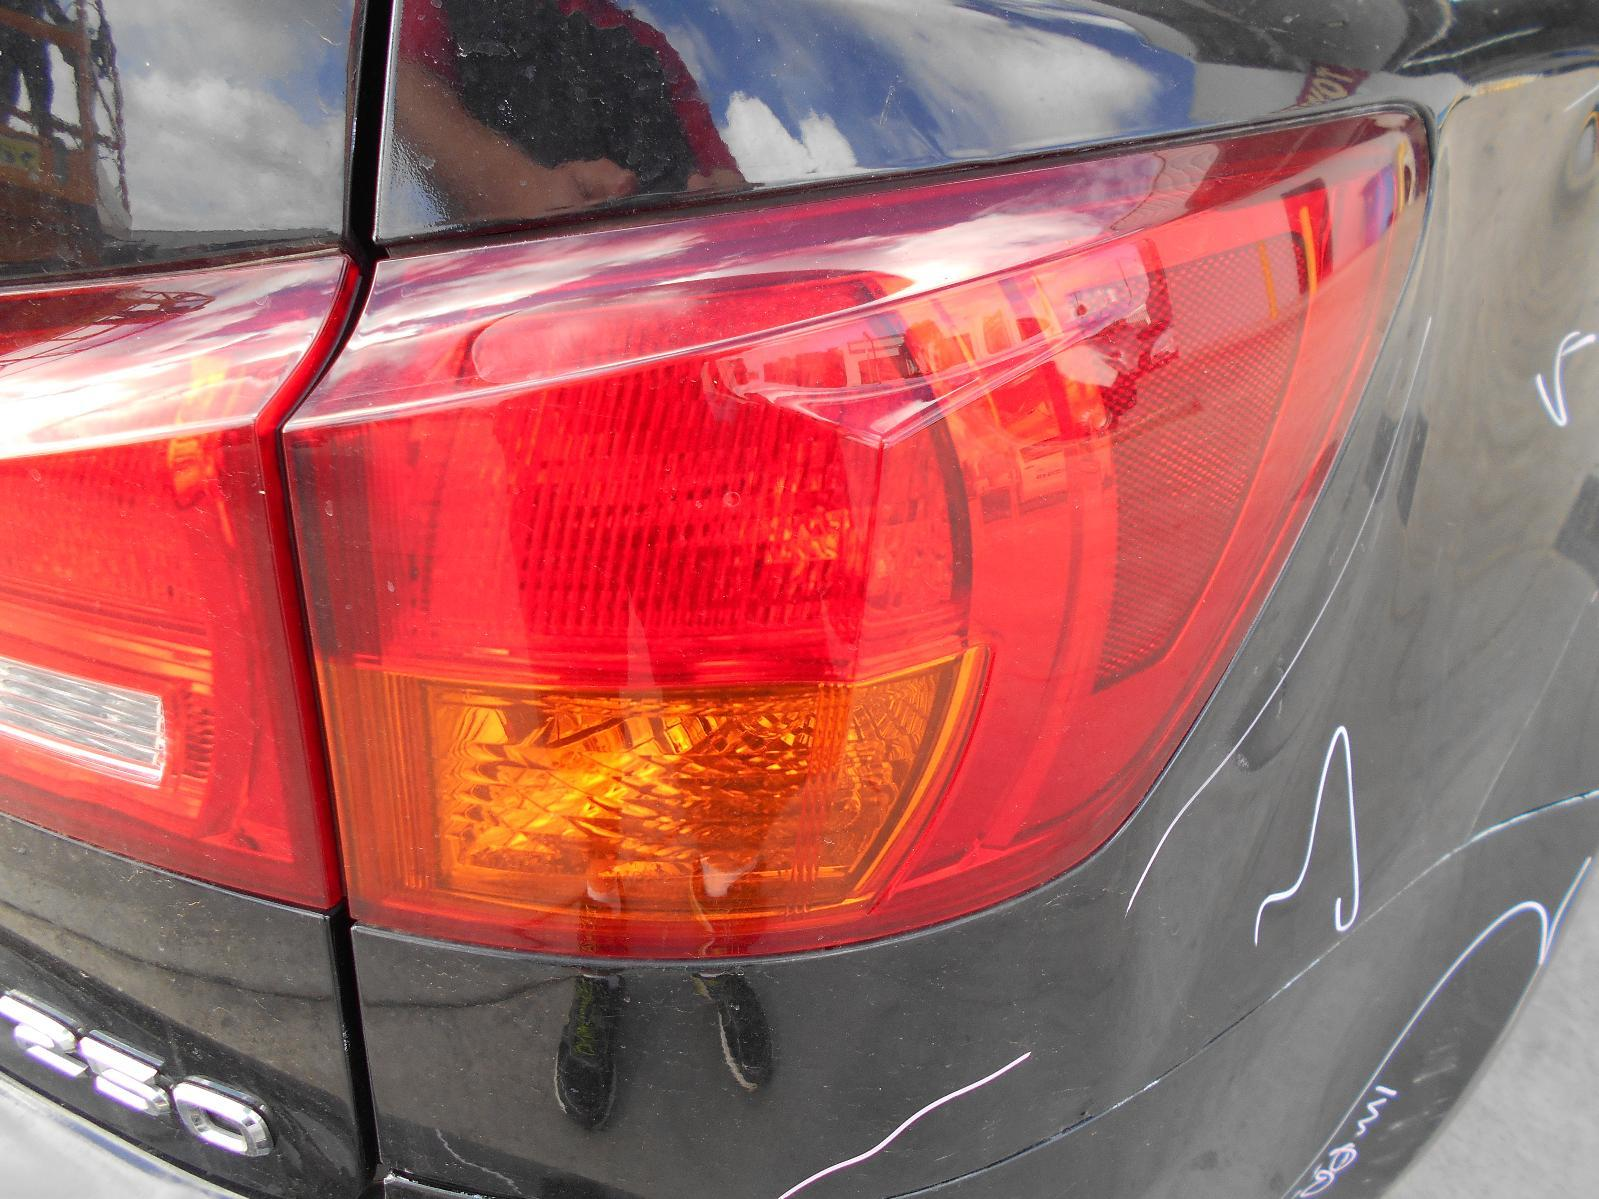 LEXUS IS250/IS250C, Right Taillight, IS250, GSE20R, SEDAN, HORIZONTAL TYPE, 11/05-09/08